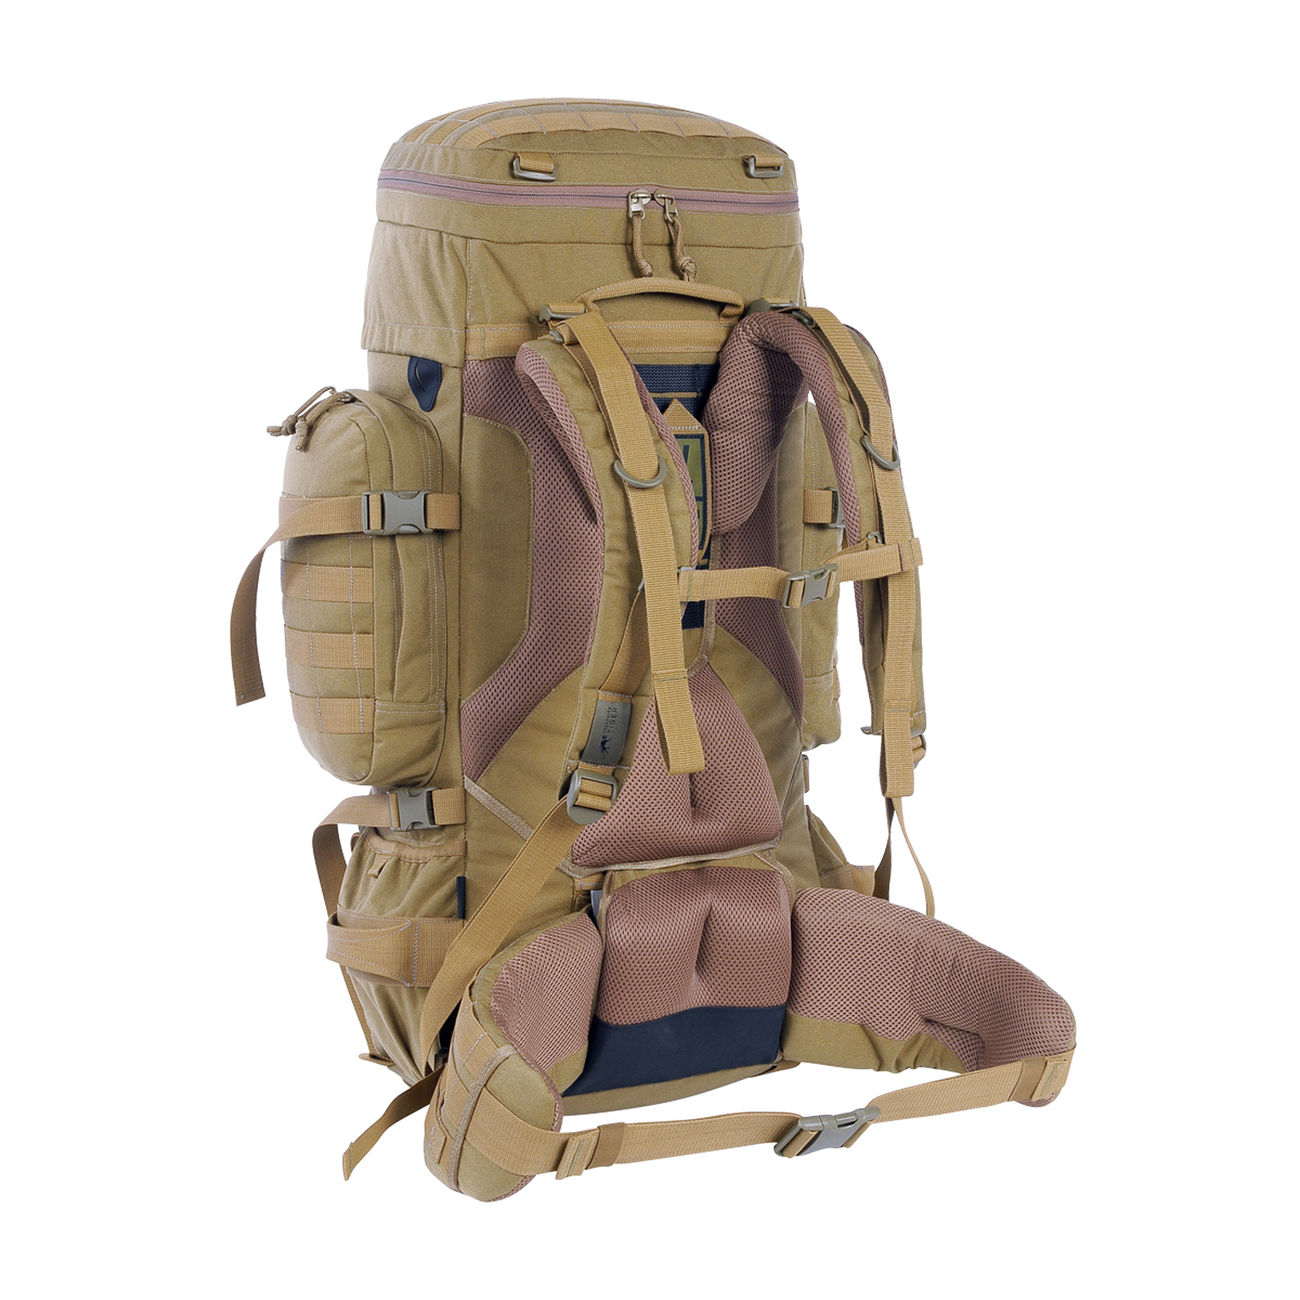 TT Rucksack Raid Pack MK III coyote brown 1